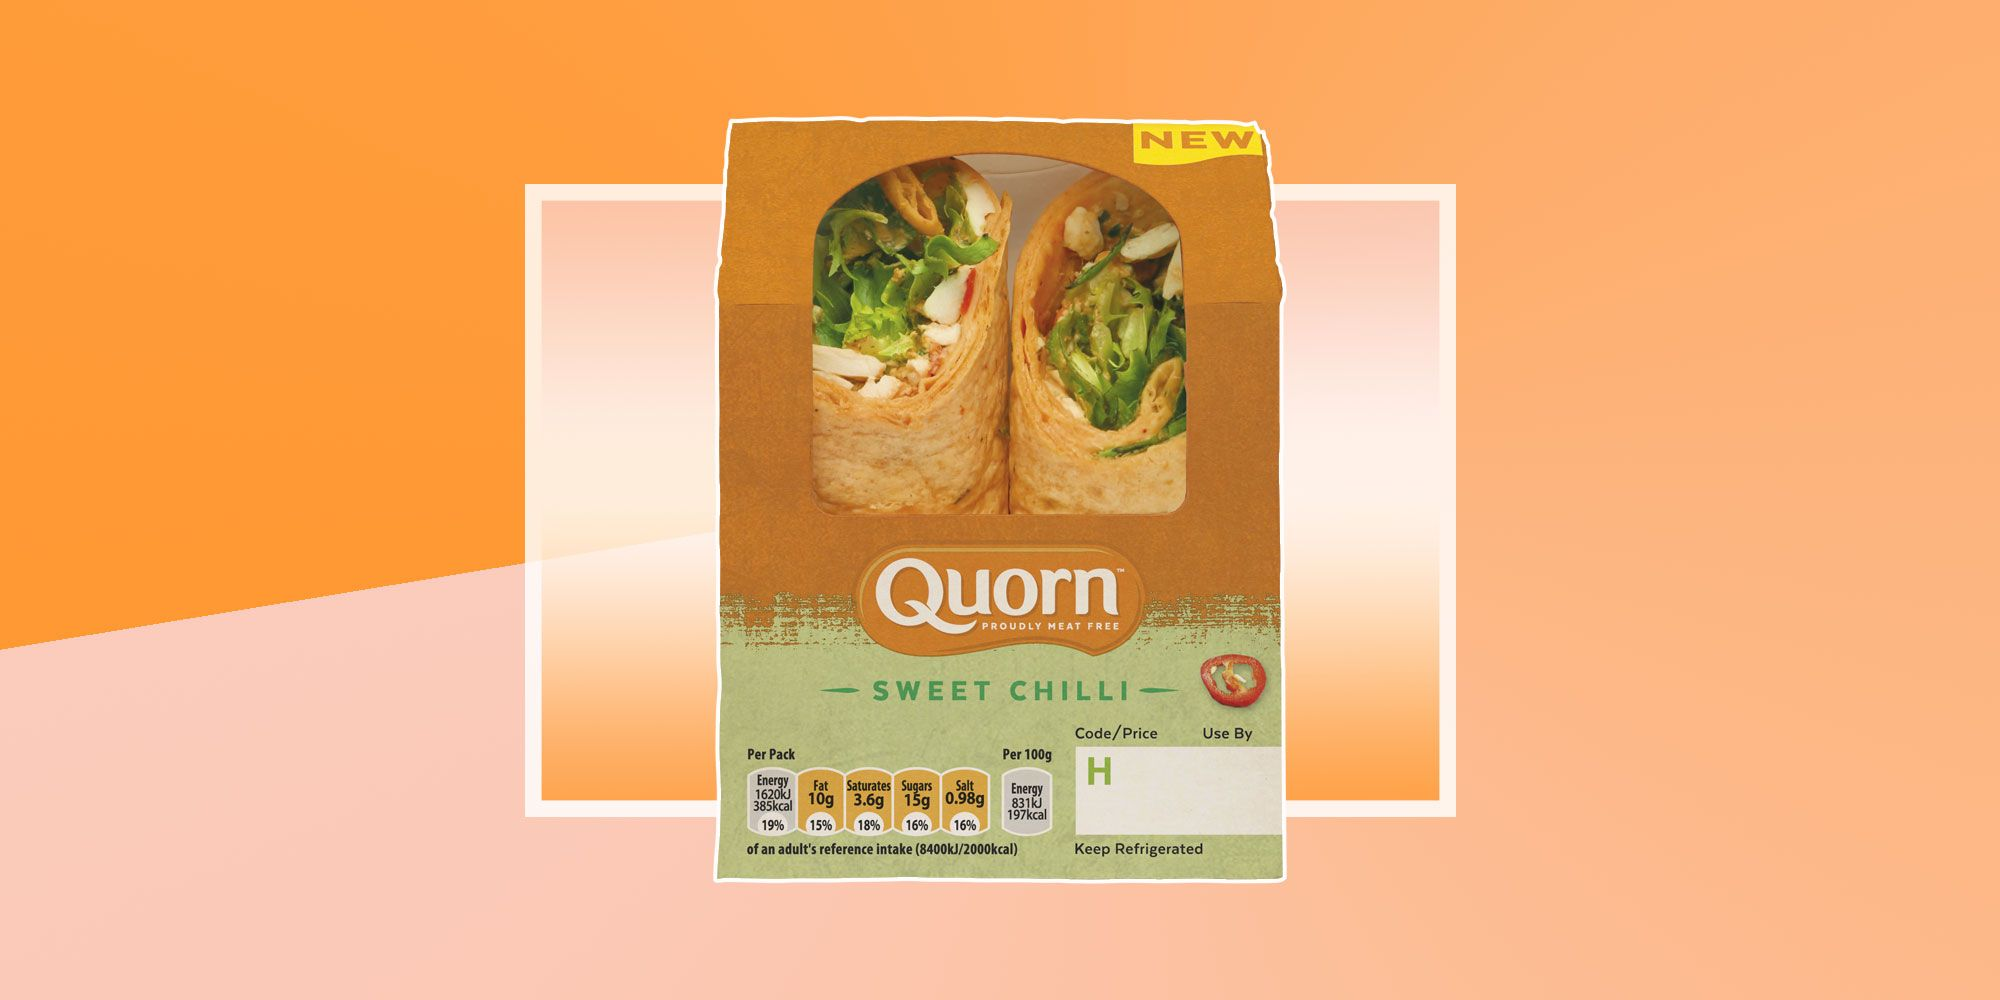 Attention: Quorn is now doing wraps and sandwiches